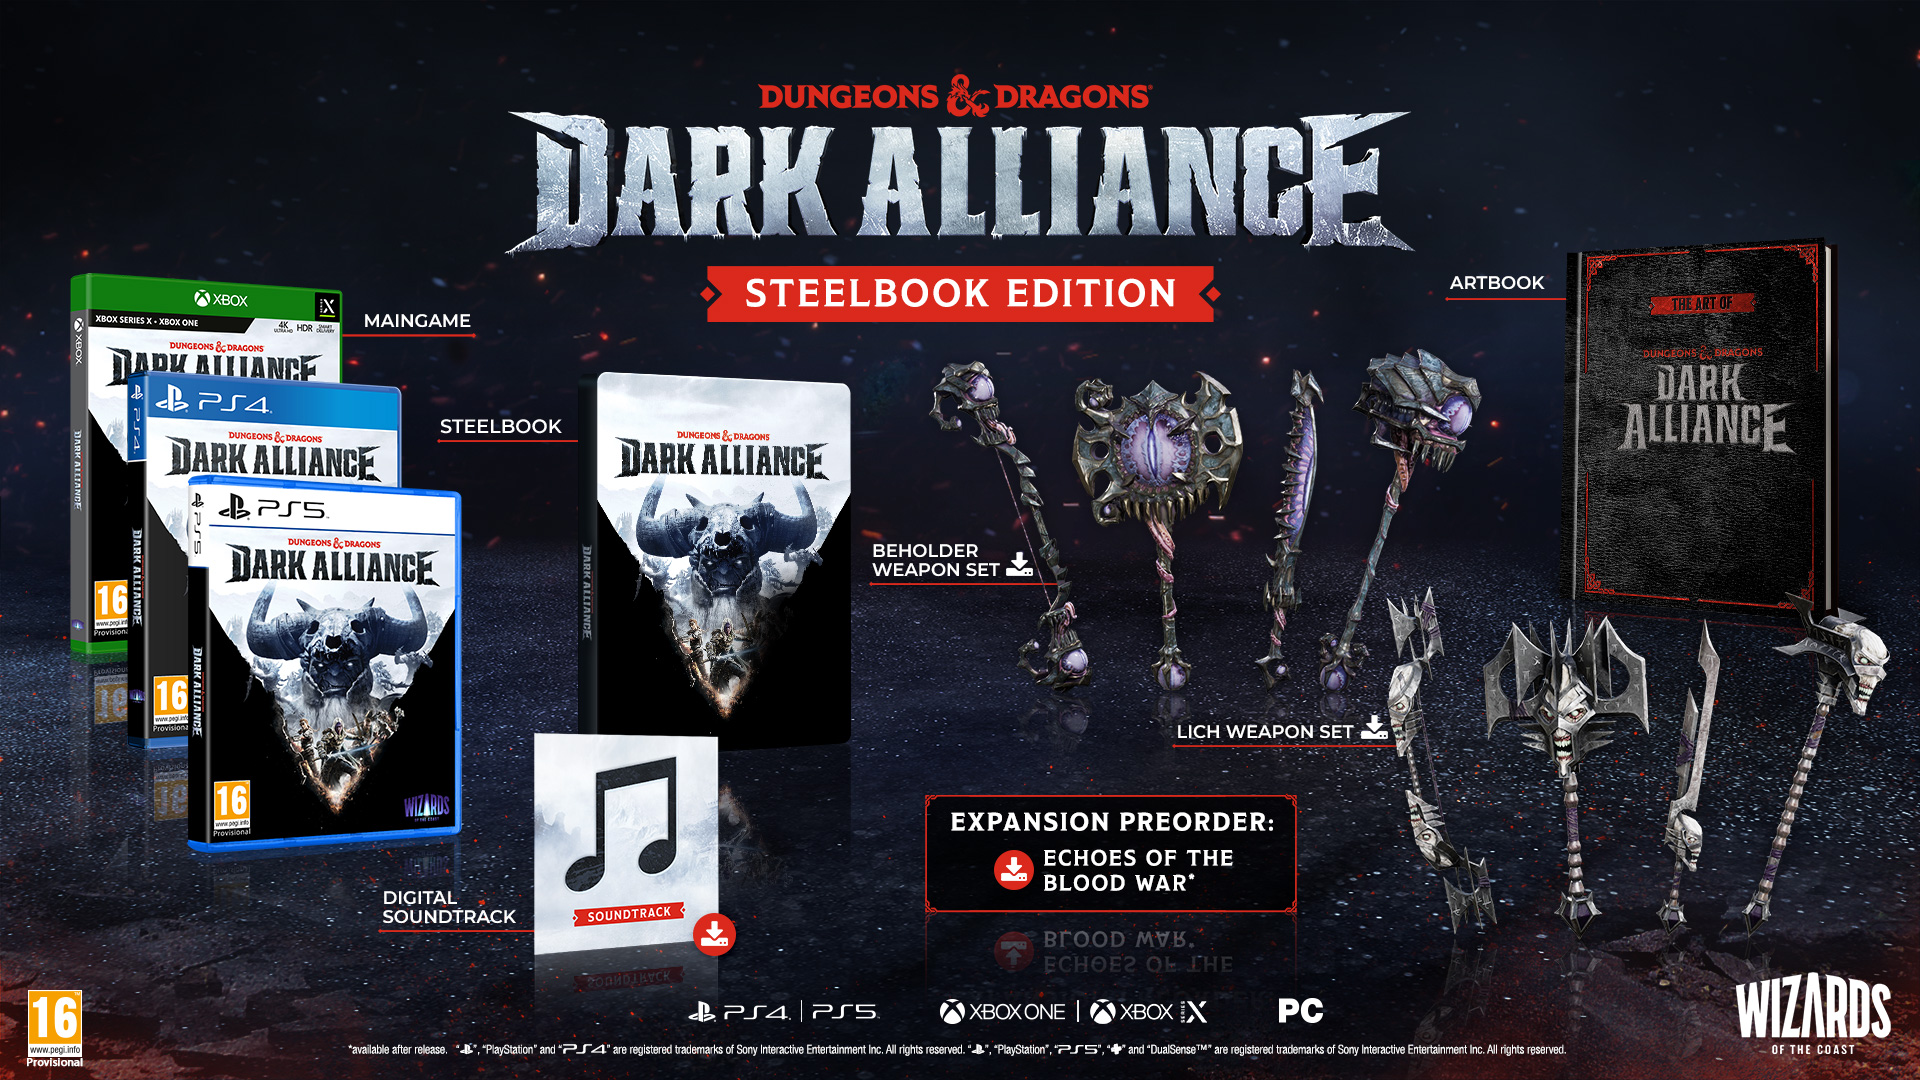 Dungeons & Dragons Dark Alliance Steelbook Edition